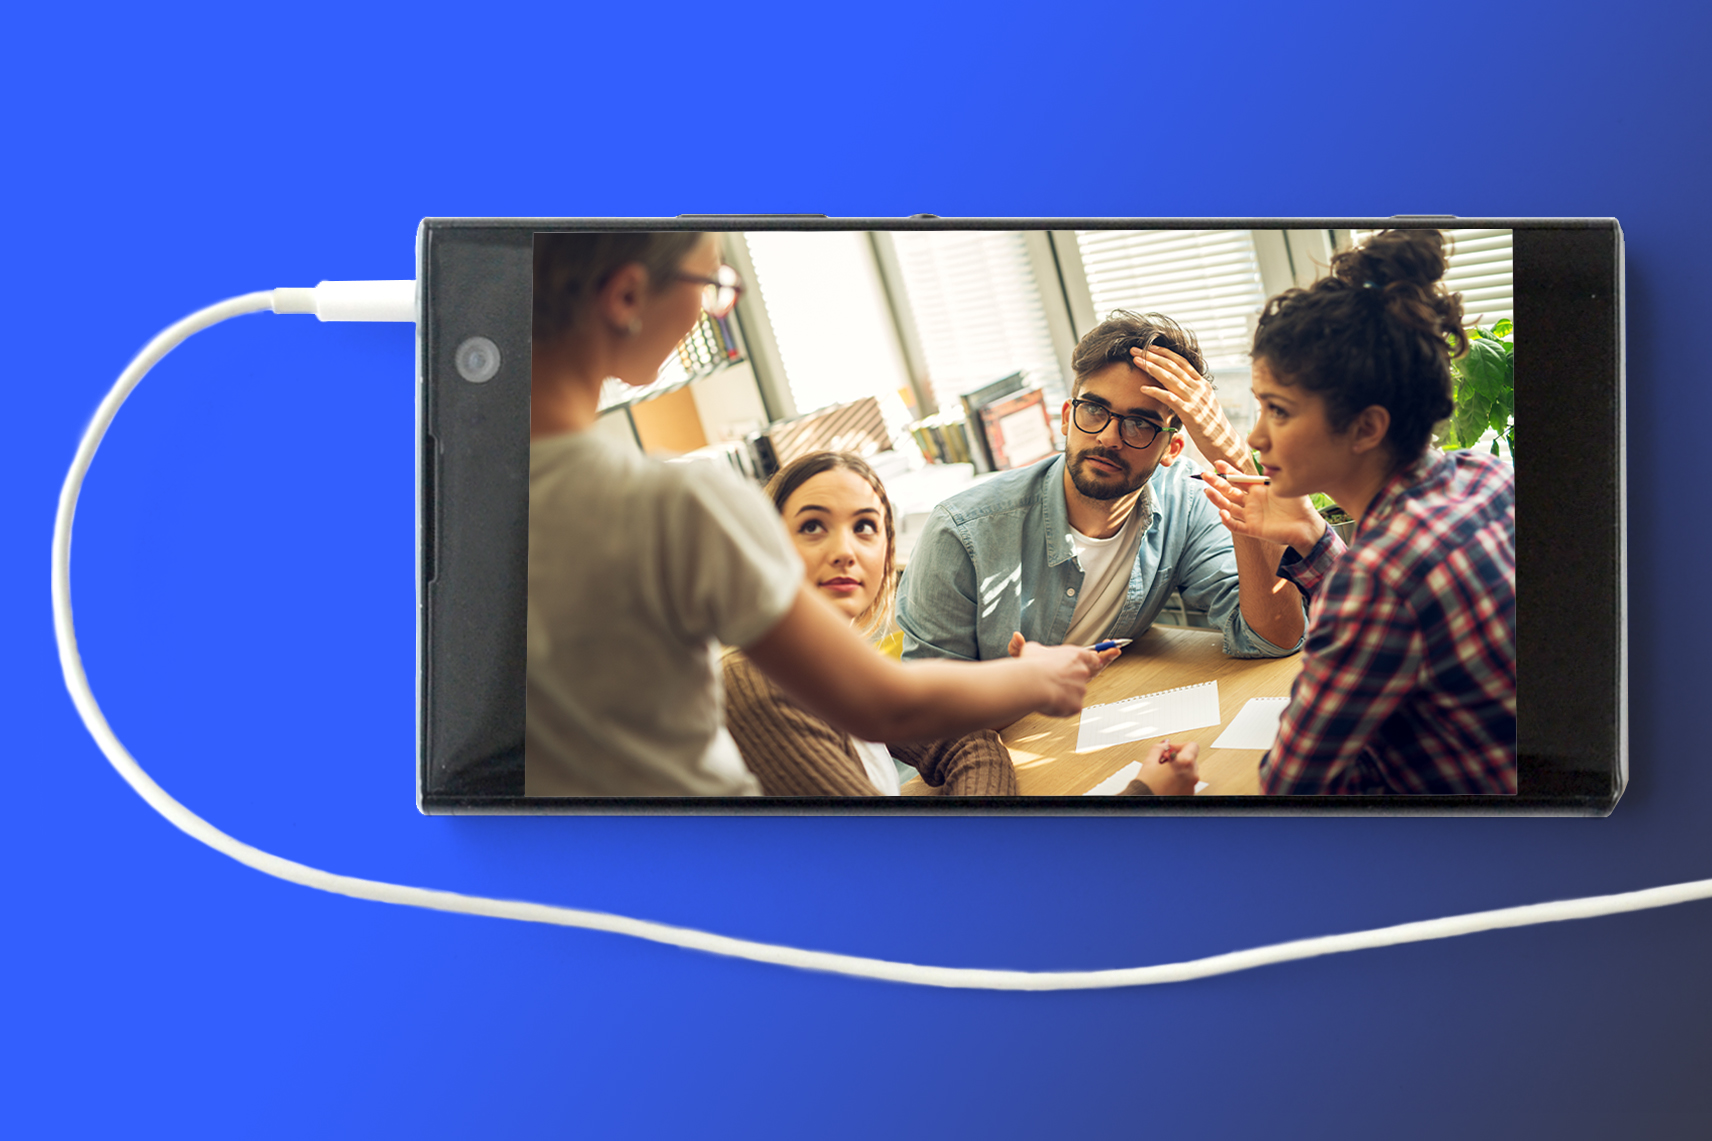 Image of cell phone with earbud cord attached. An image of 4 individuals around a table appears on the phone.